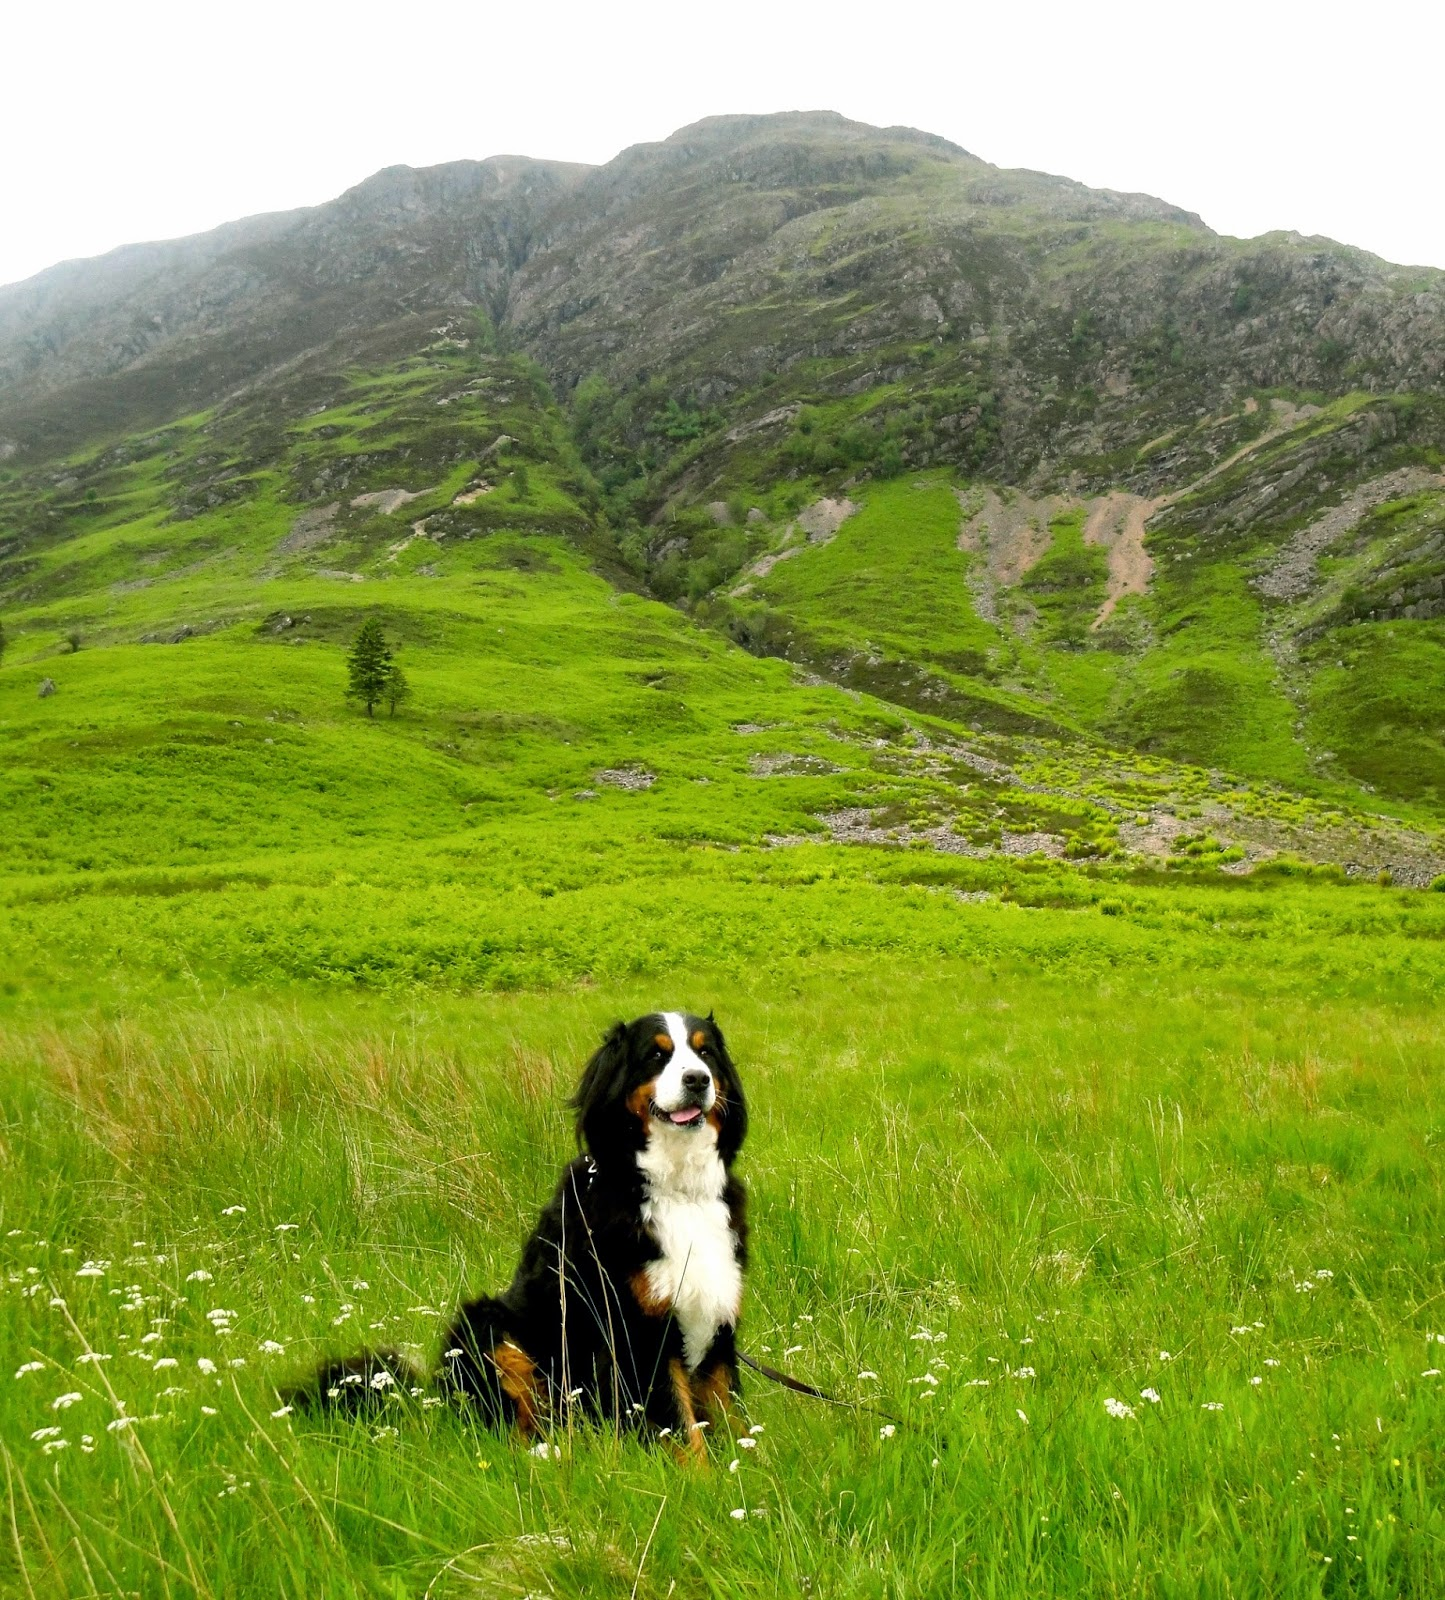 Mattie on a hike in Glencoe